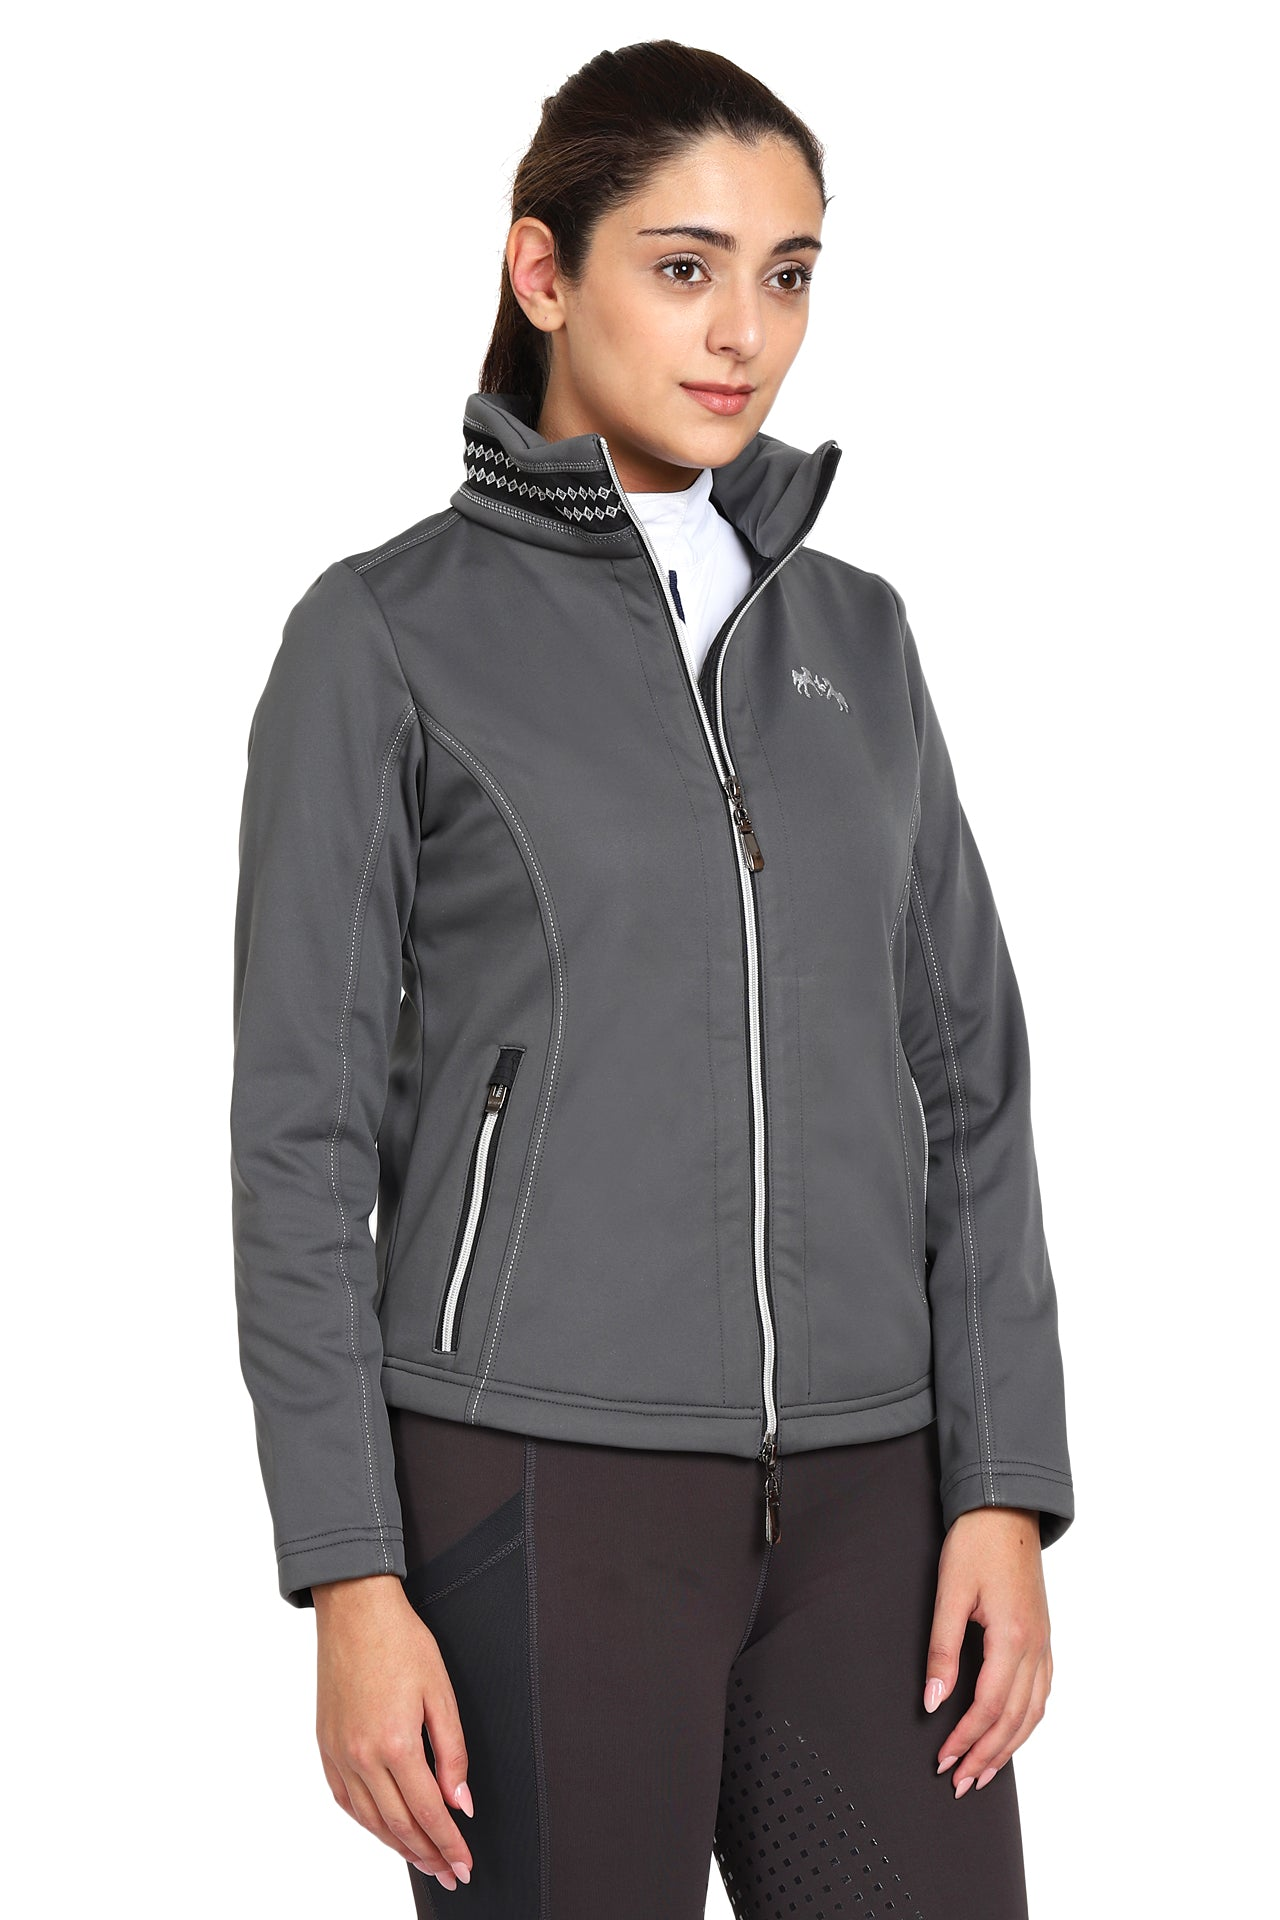 EQUINE COUTURE LADIES BECCA SOFT SHELL JACKET WITH FLEECE_1